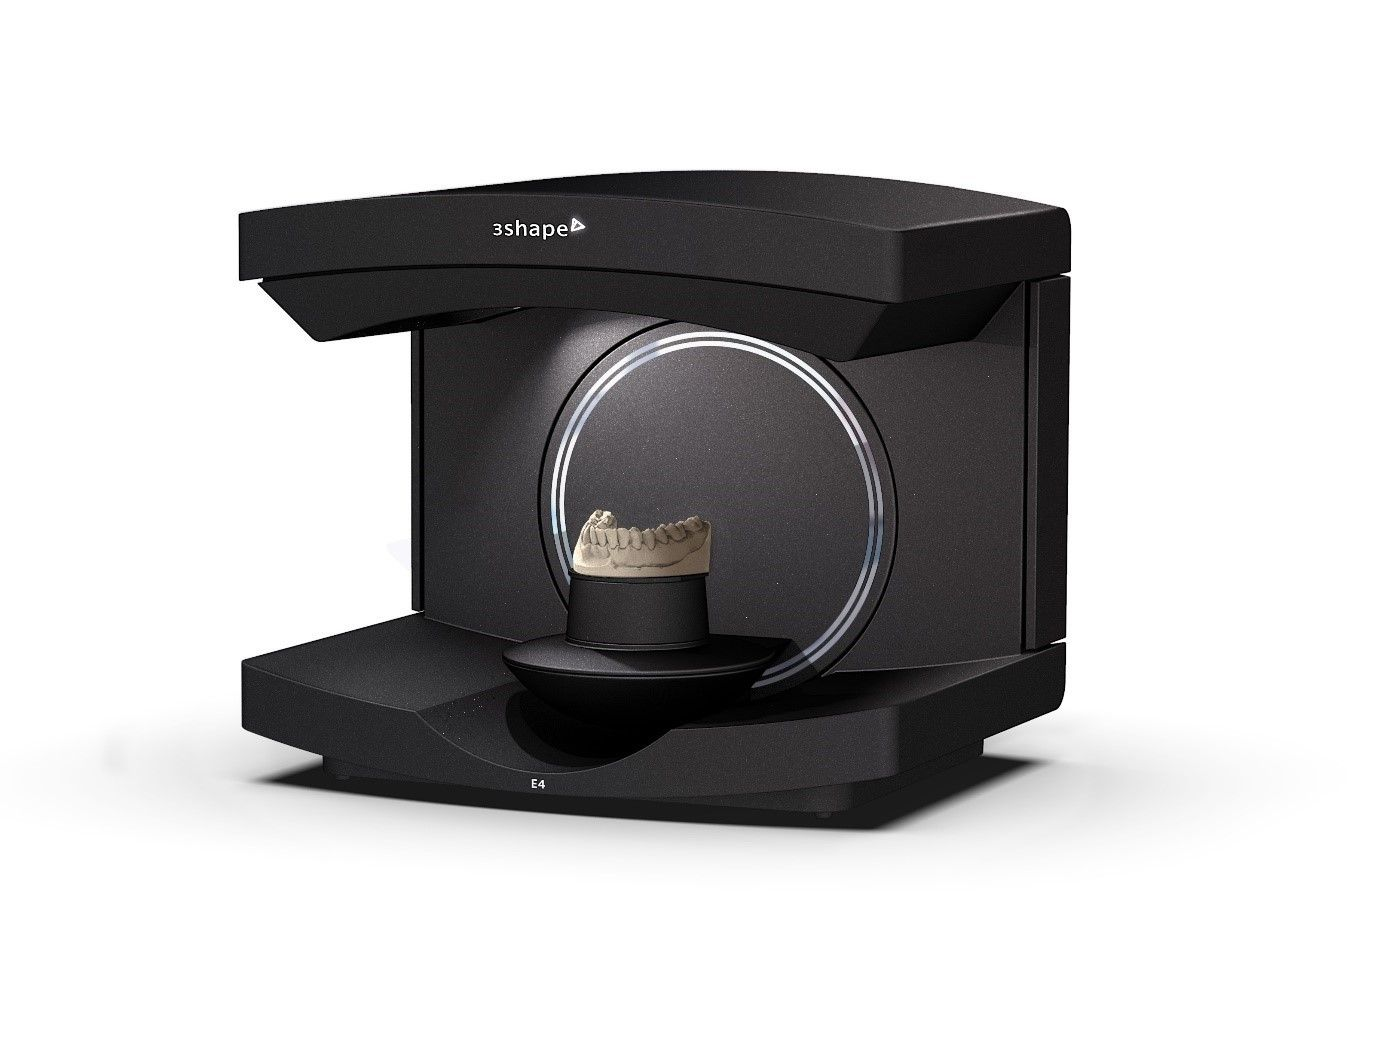 Double up Your Labs Scanning Speed and Accuracy